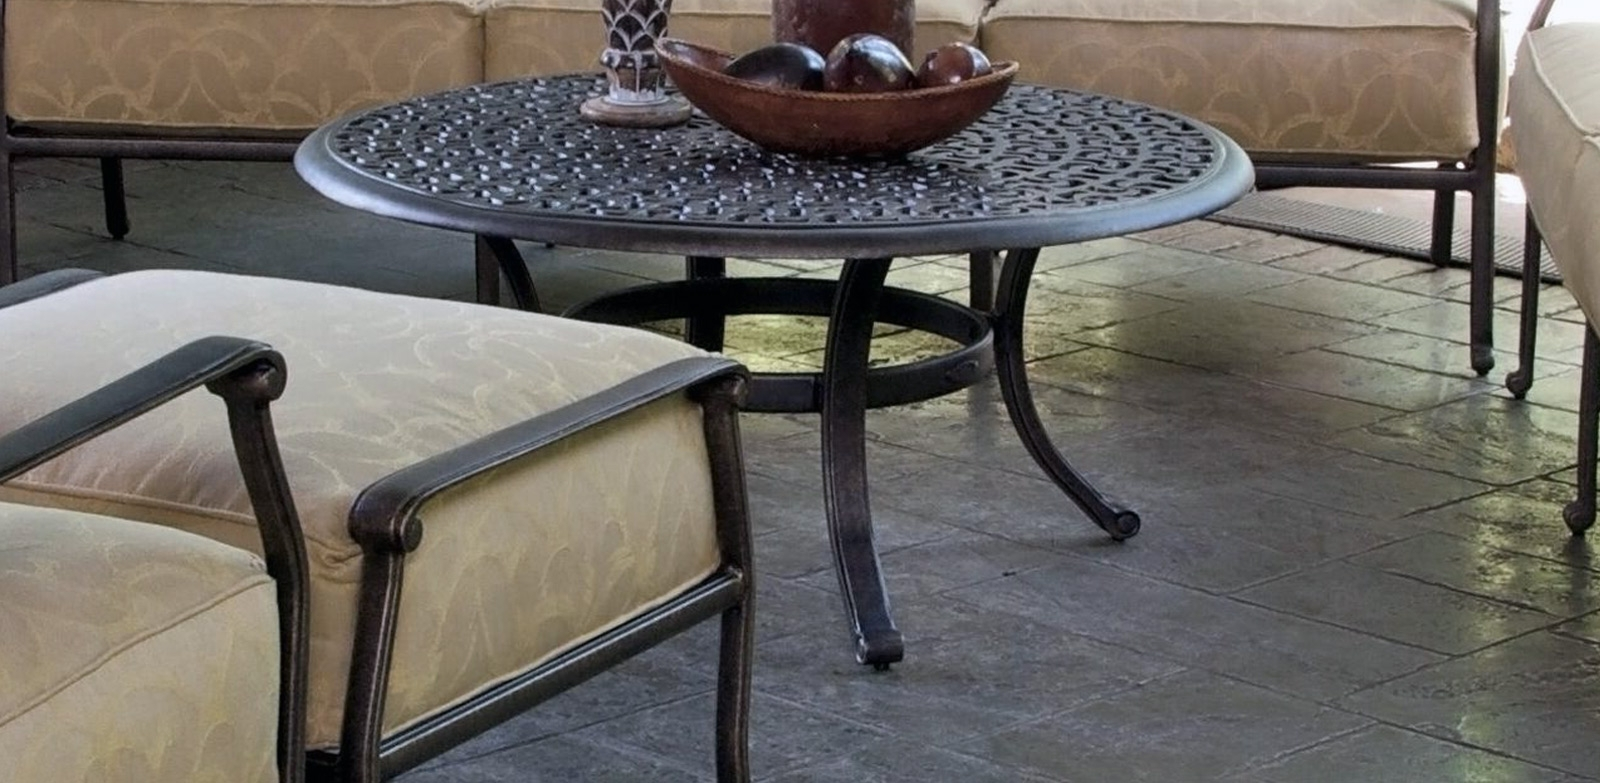 Sienna Tables – Castelle Luxury Outdoor Furniture Intended For Well Liked Outdoor Sienna Dining Tables (View 21 of 25)